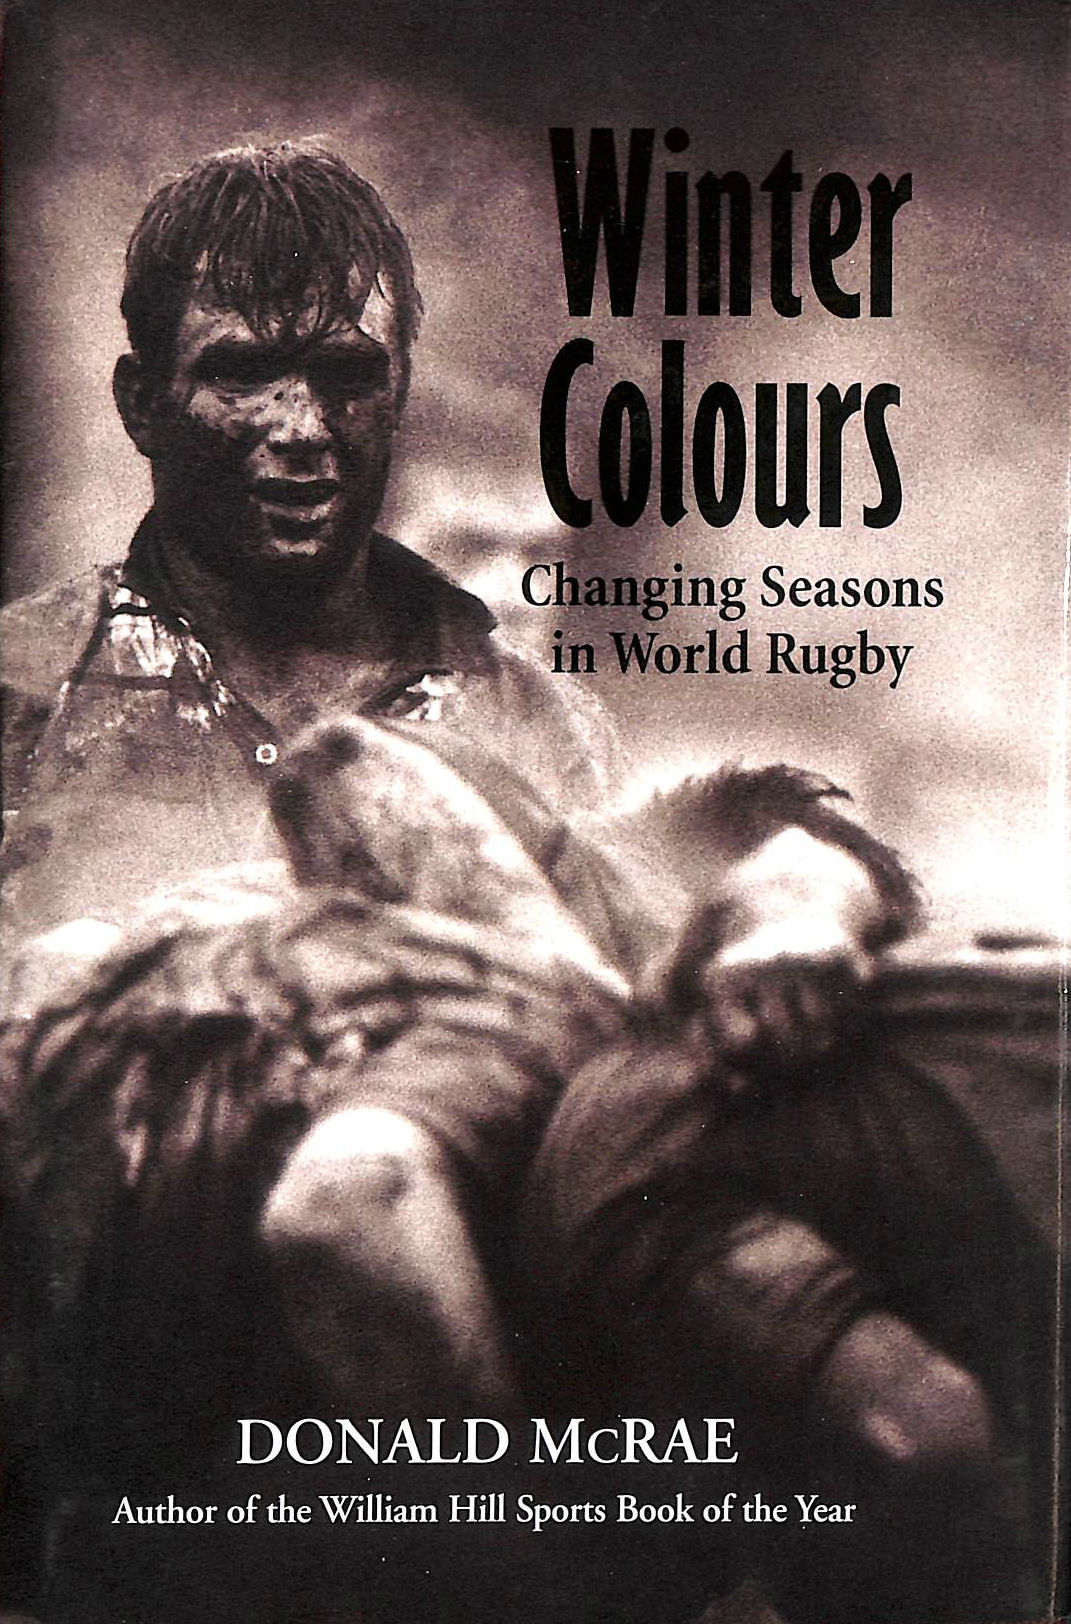 Image for Winter Colours: Changing Seasons in World Rugby